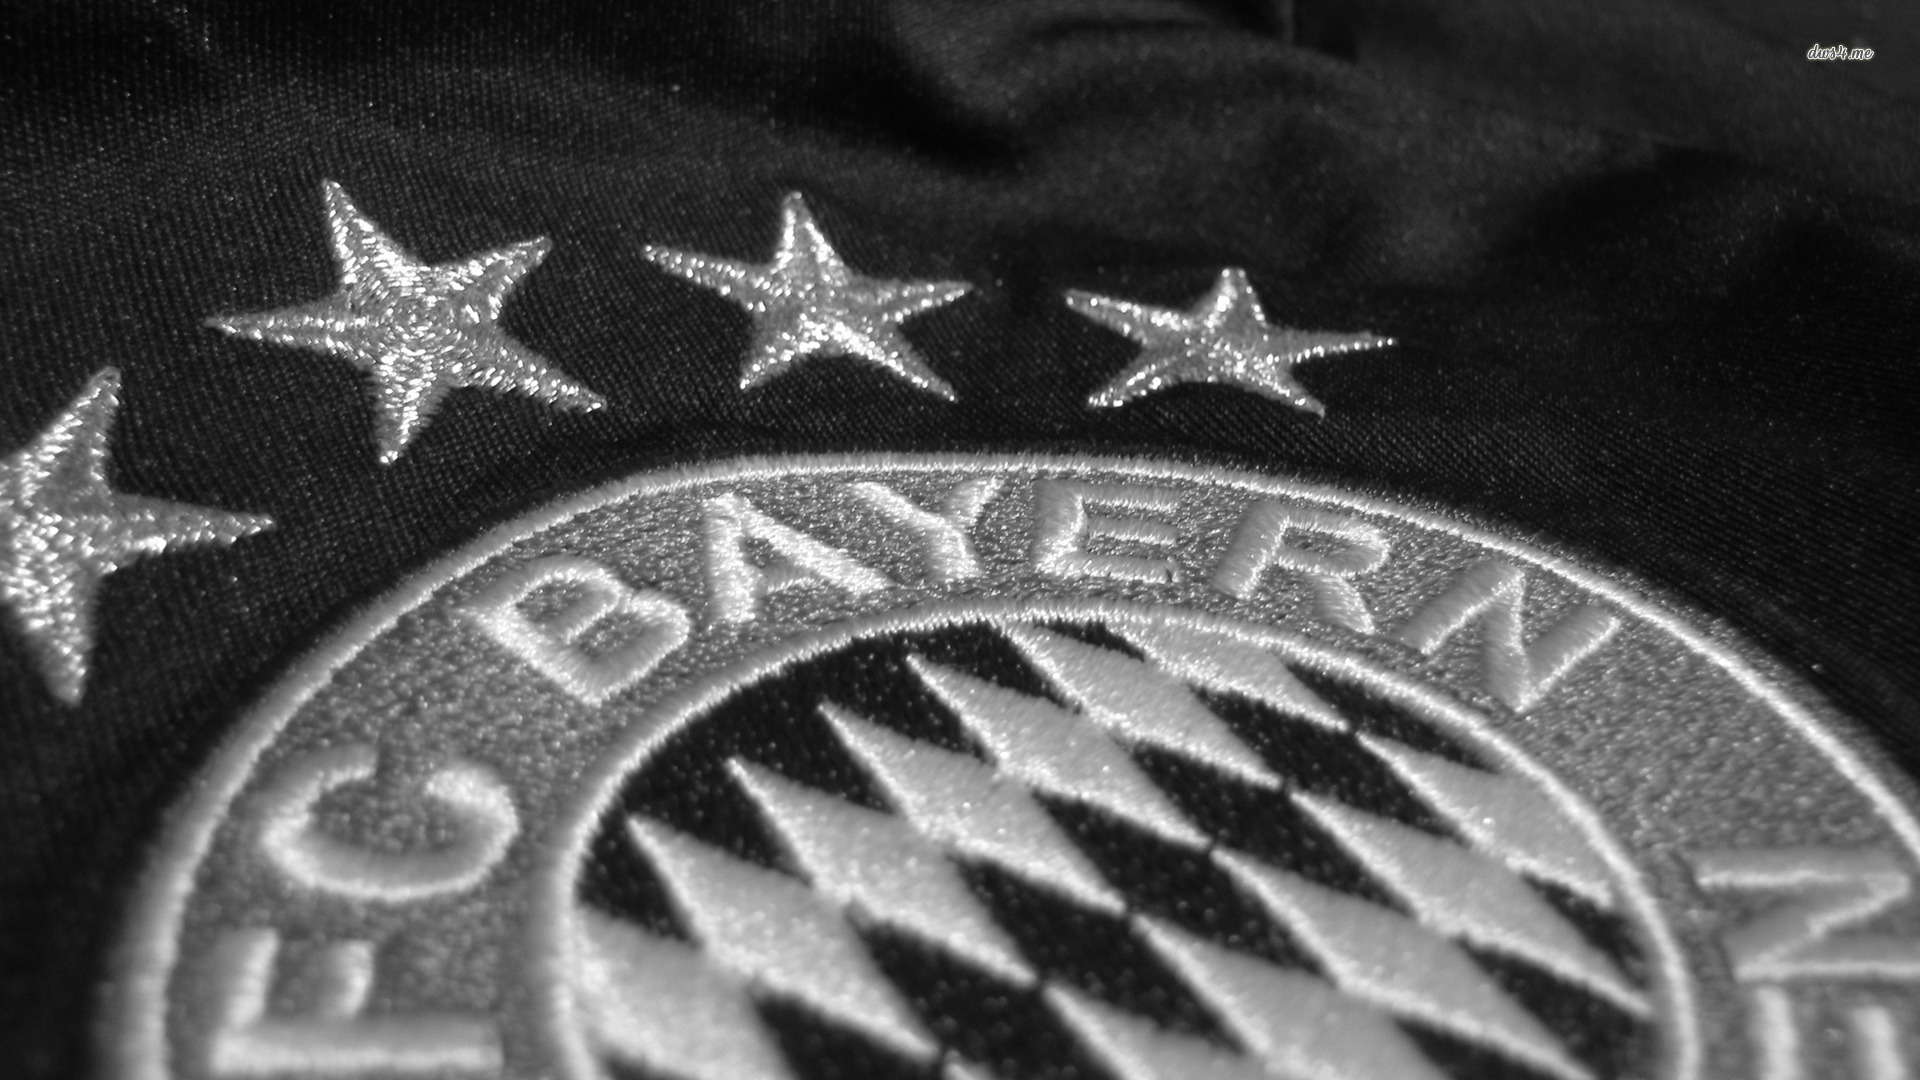 Fc Bayern Munich Gallery 541046866 Wallpaper For Free Awesome Hd Widescreen Wallpapers